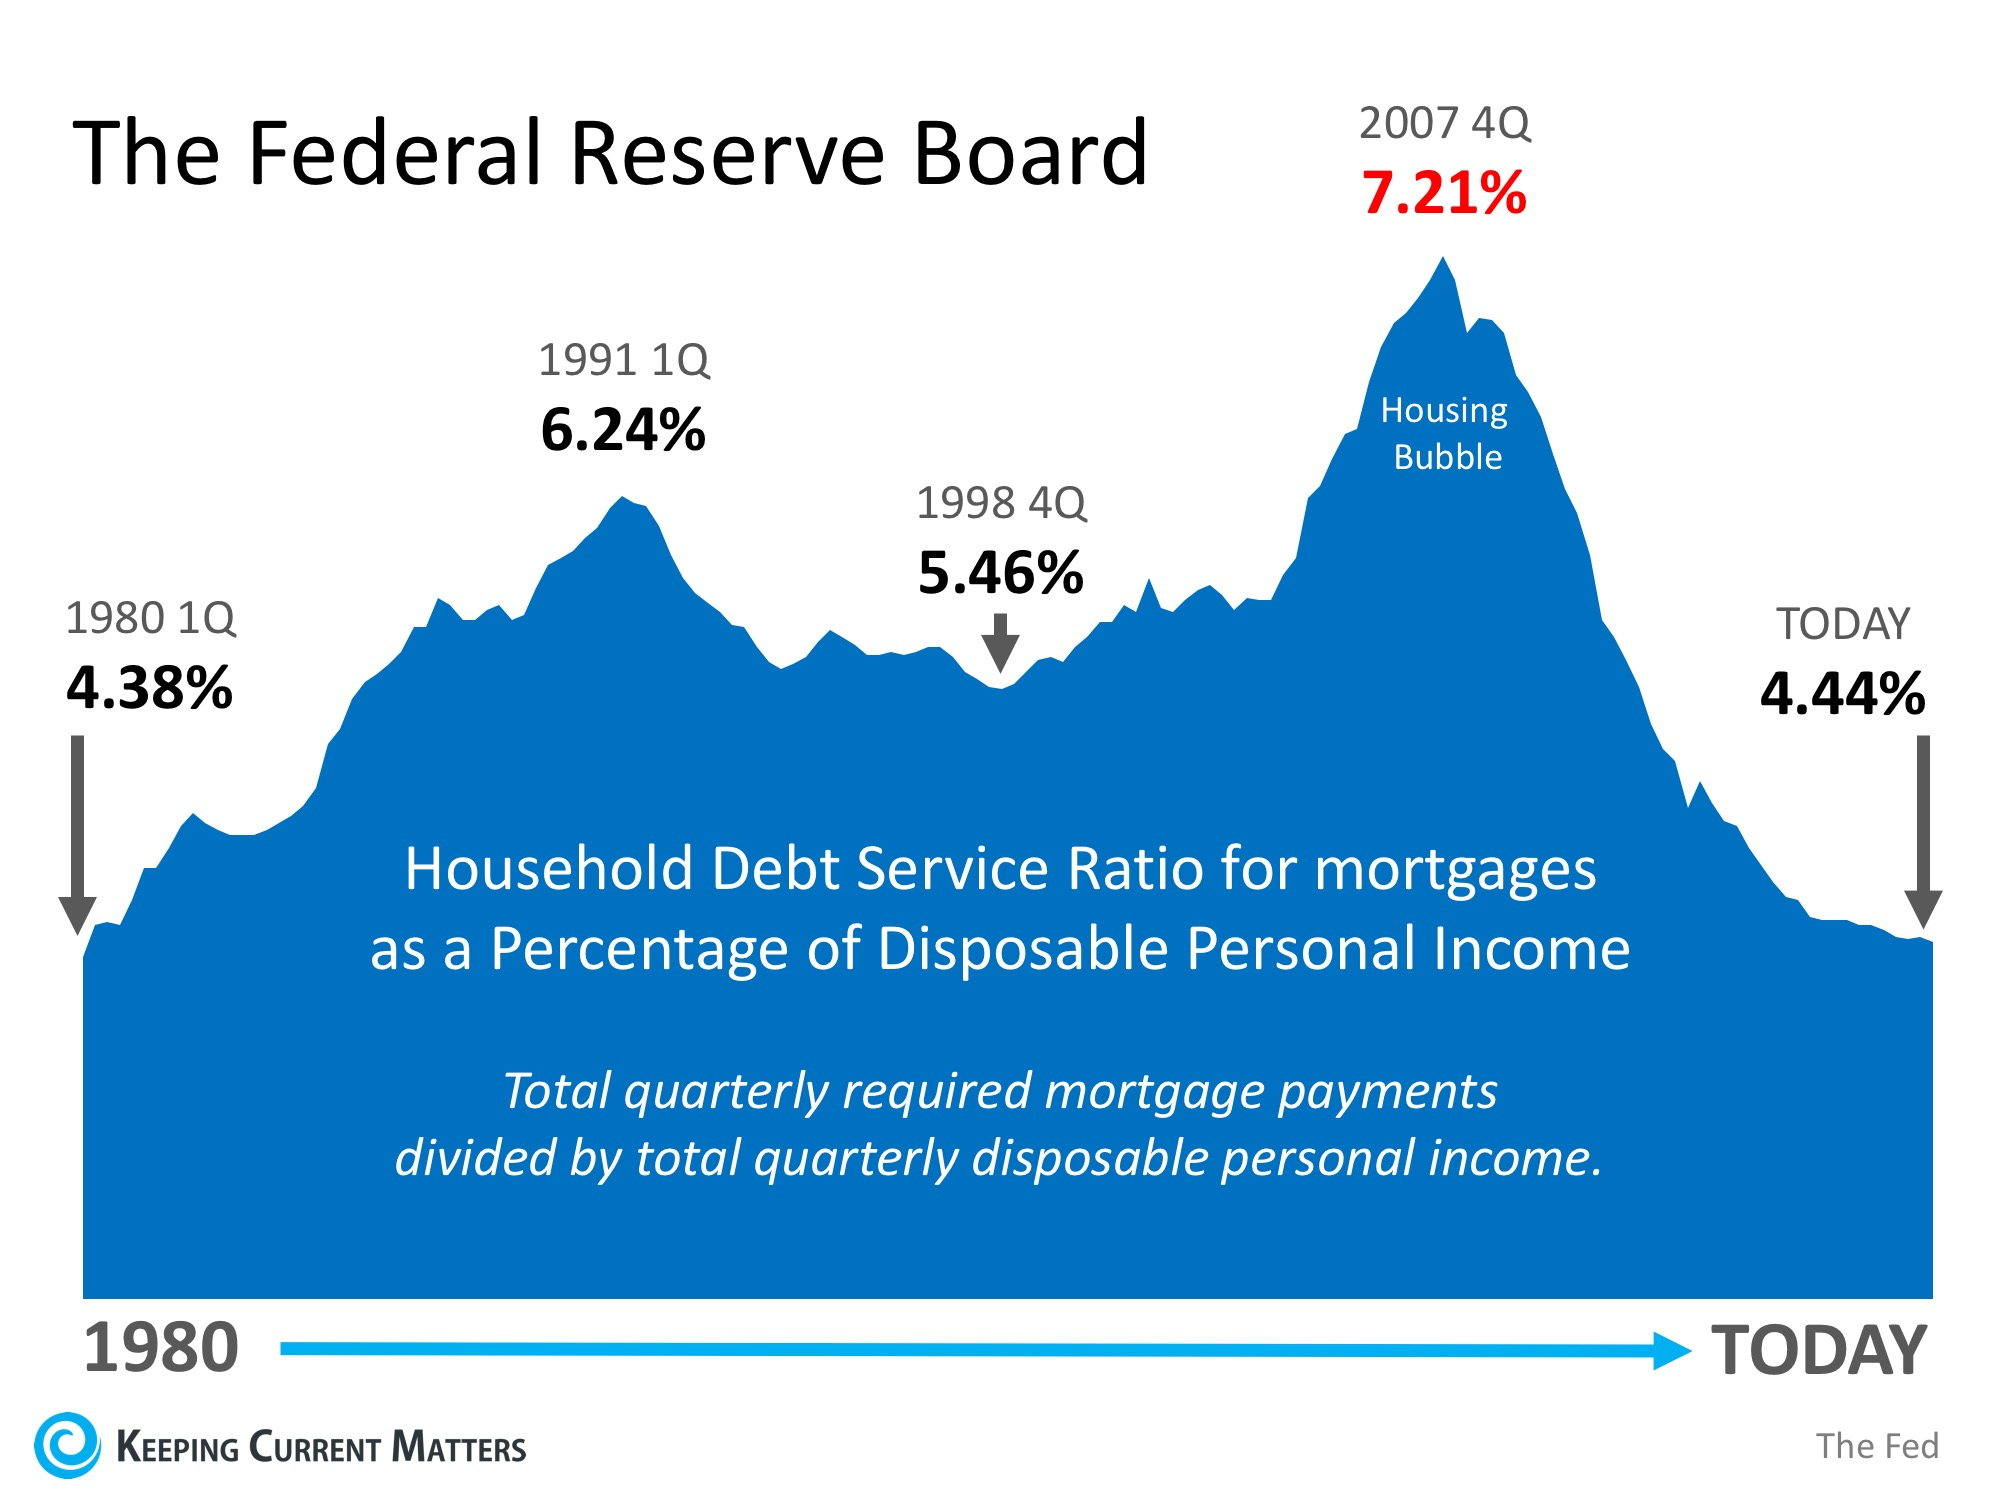 Is Family Mortgage Debt Out of Control? | Keeping Current Matters